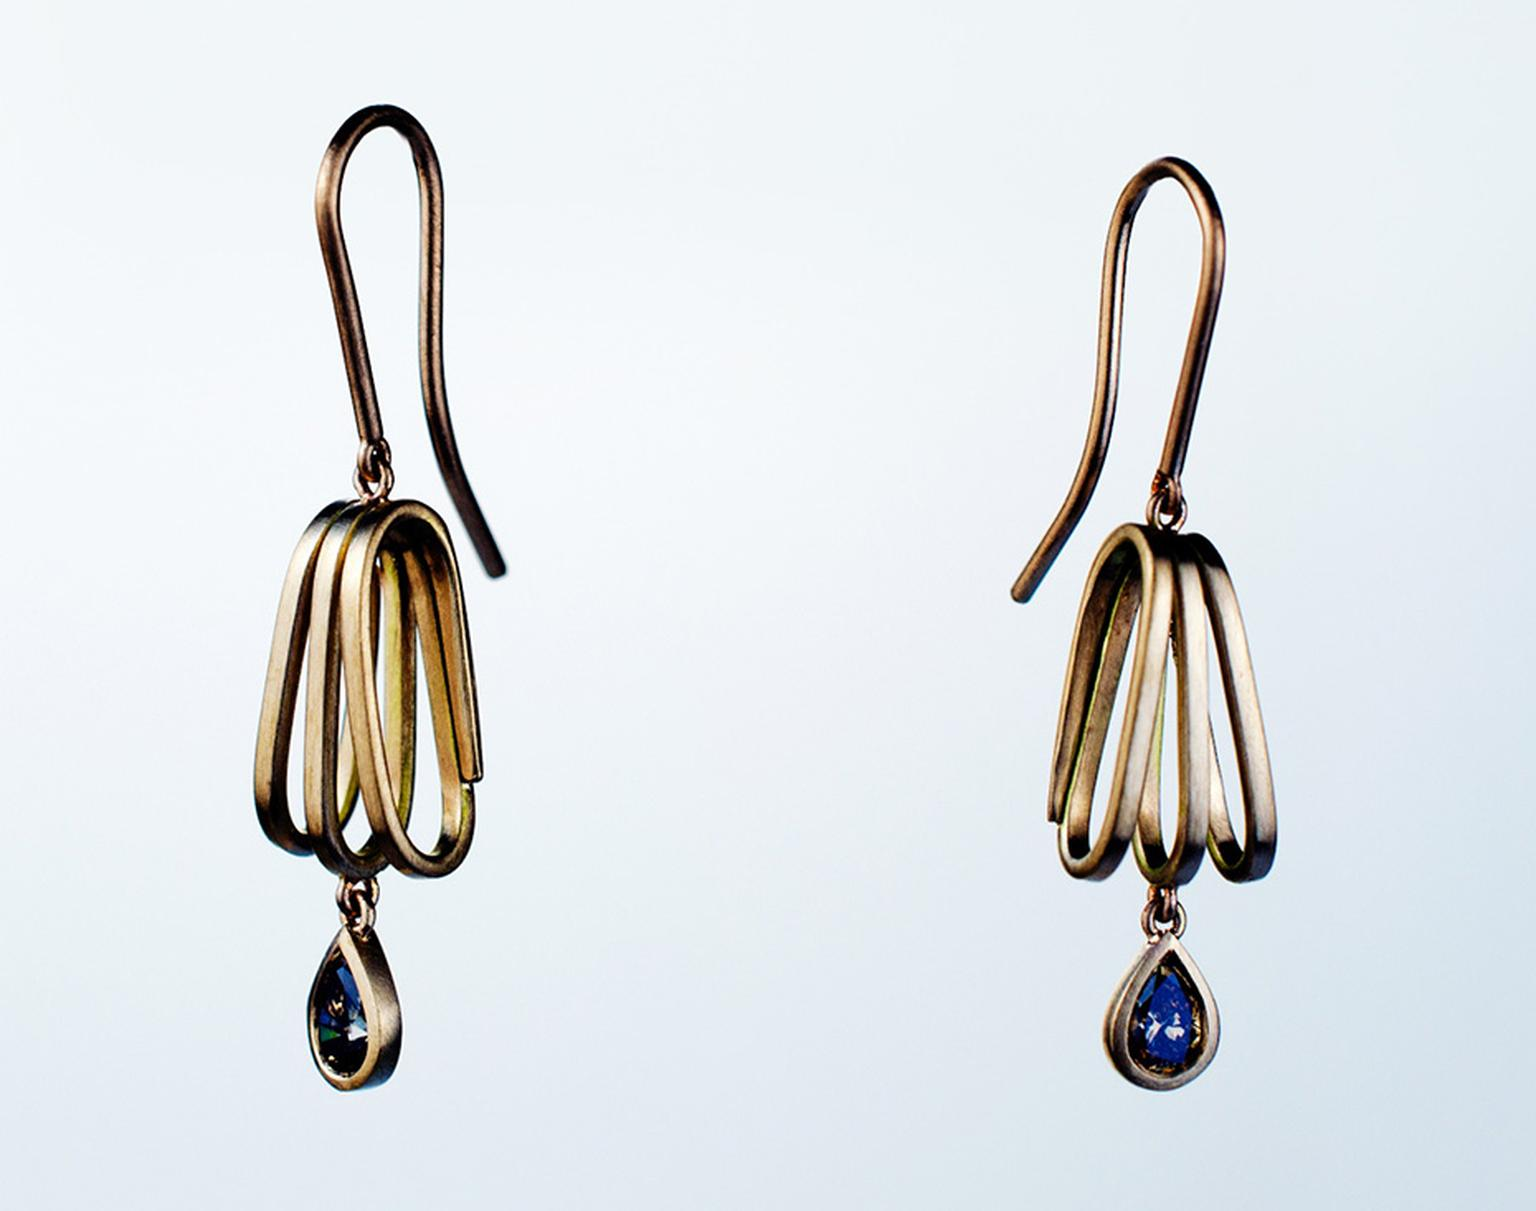 Cox & Power Seascape earrings in Fairtrade red gold, set with pear-shaped cognac diamonds.